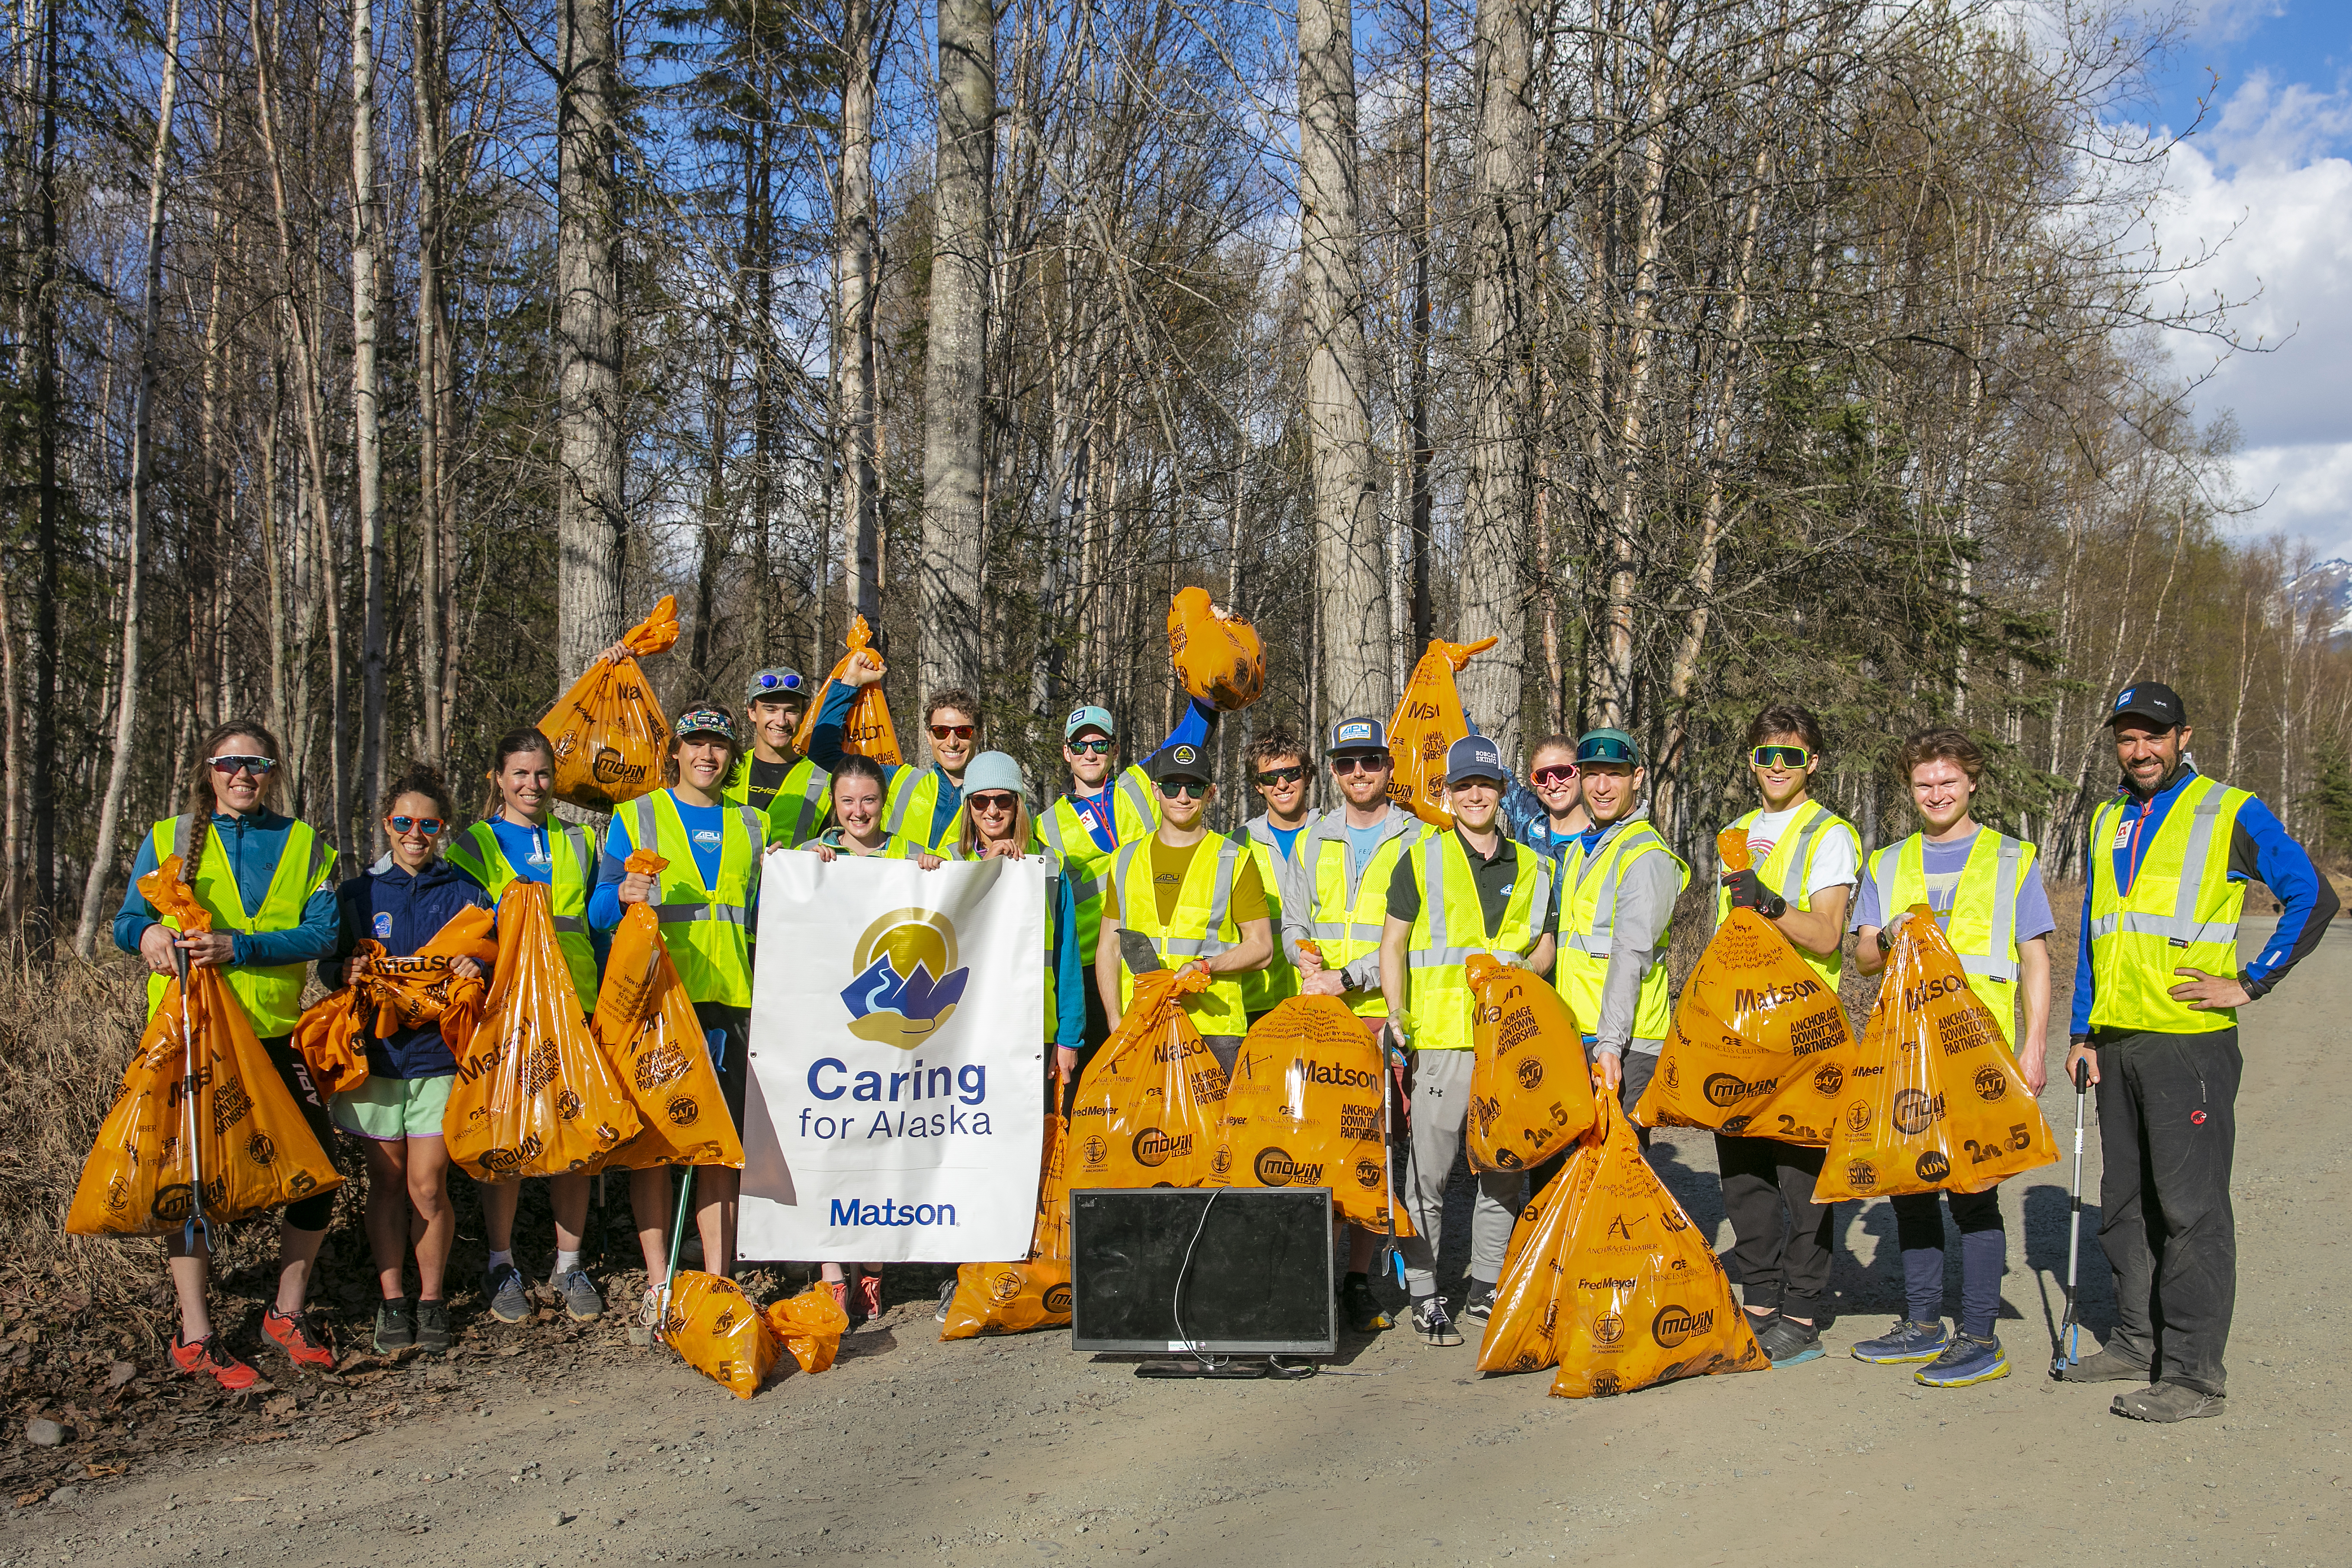 Volunteers wearing yellow safety vests pose for a group picture with their full orange trash bags and Caring For Alaska banner.